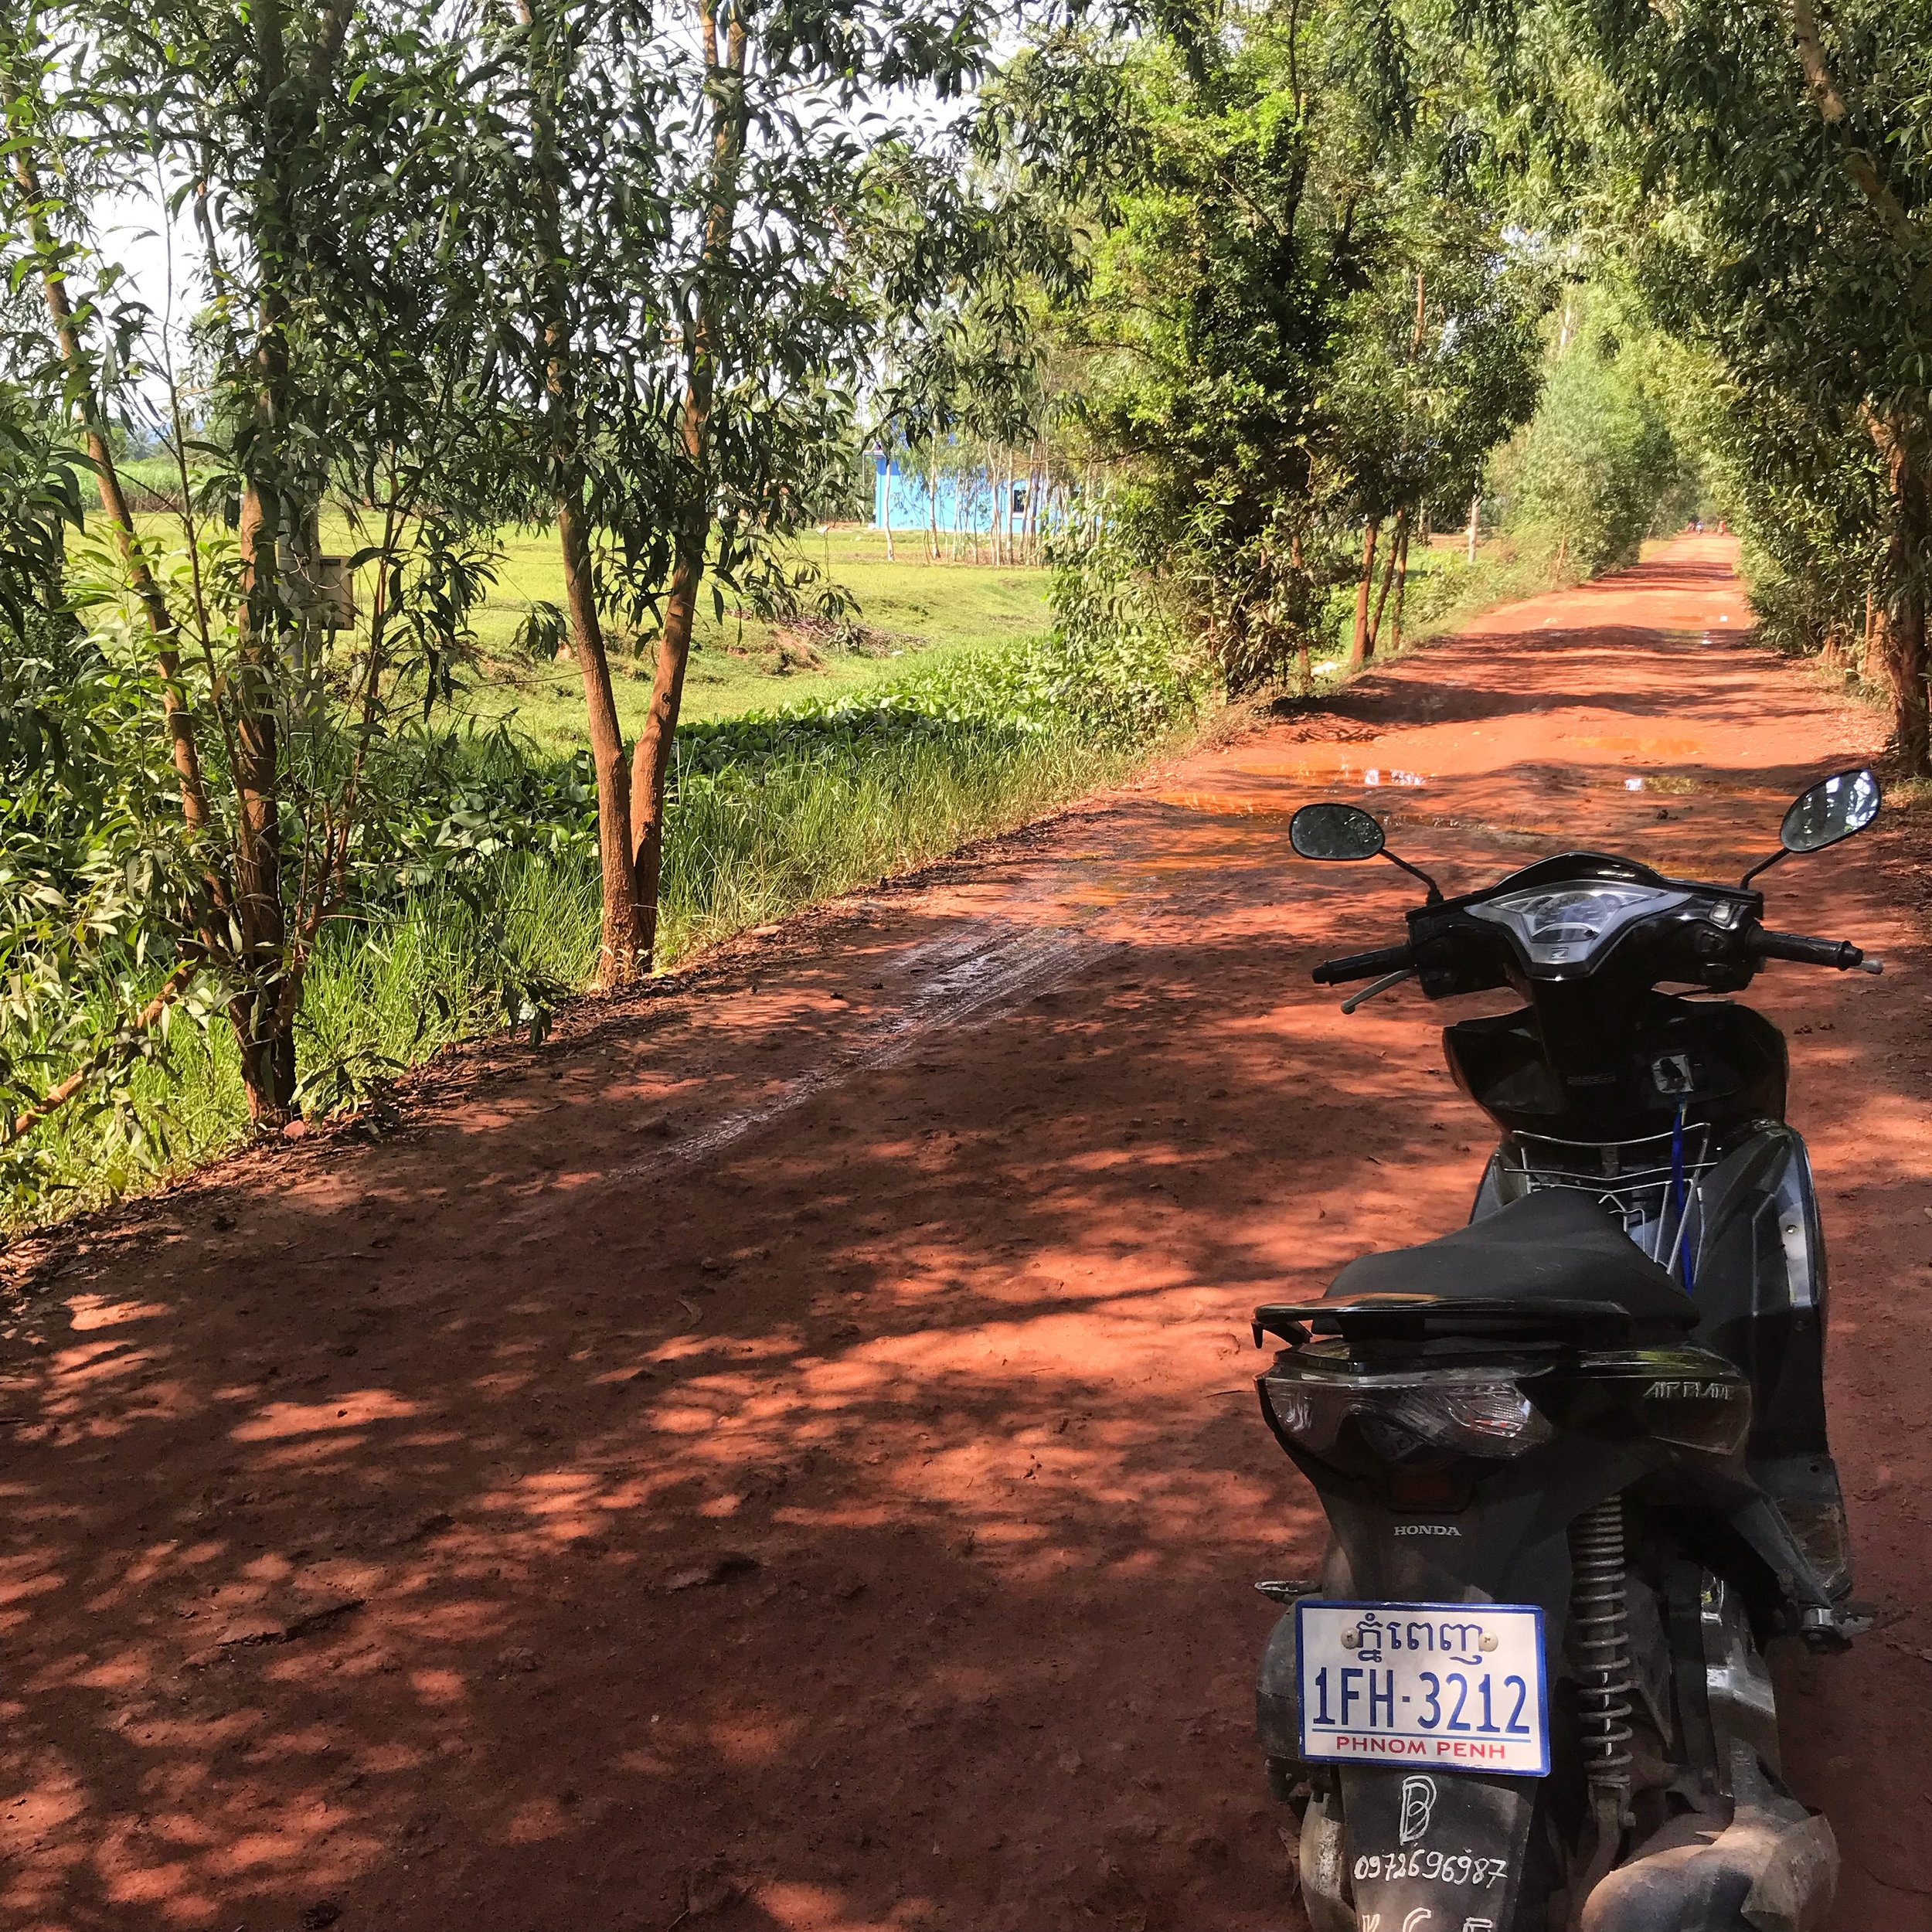 Stopping for a rest on a village road between Kep and Kampot.